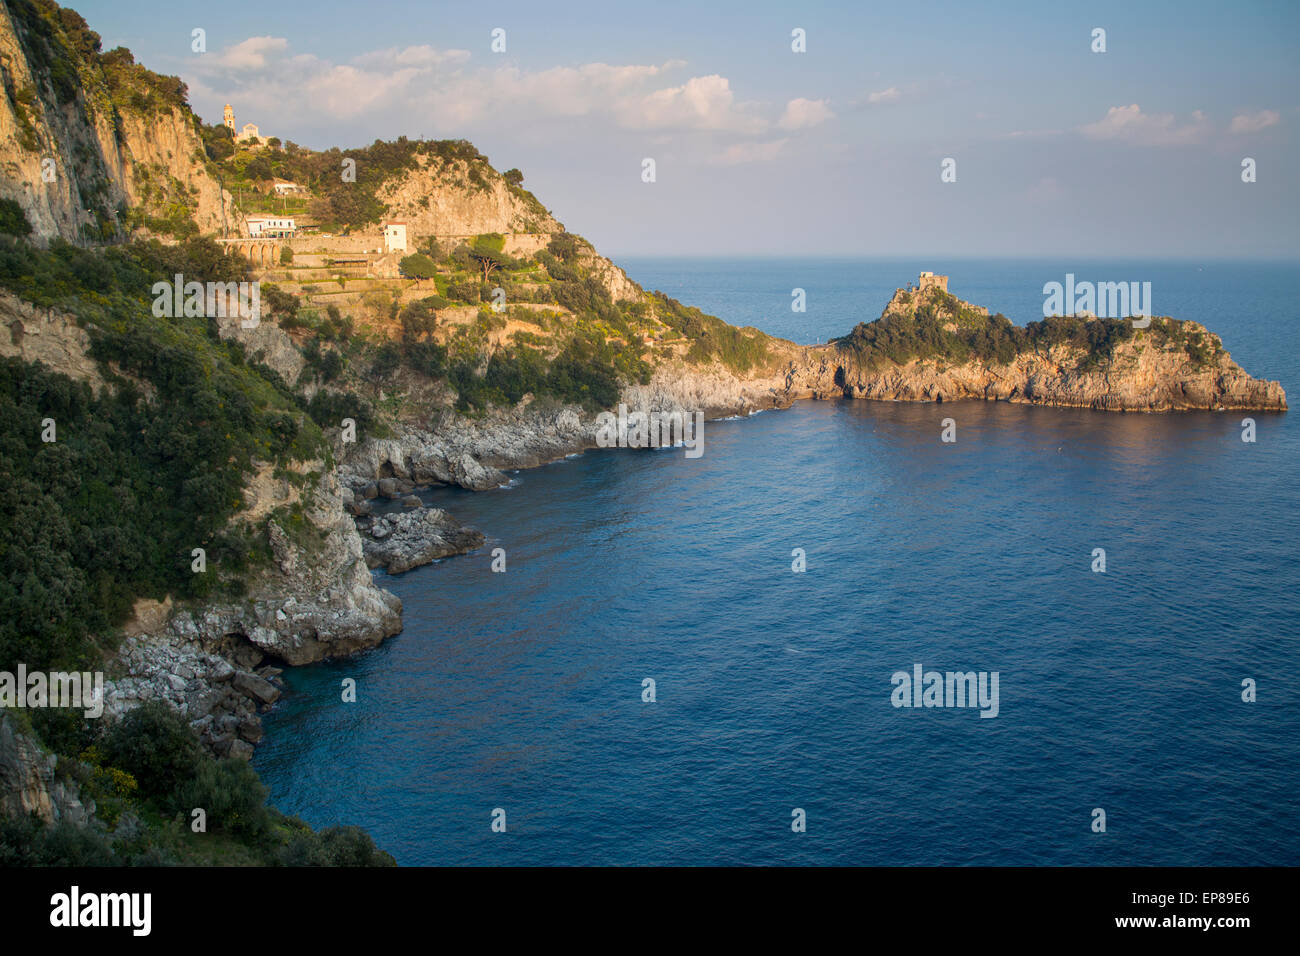 Torre del Capo Conca Tower or Saracen or White Tower - a 16th century watchtower along the Amalfi Coast near Praiano, - Stock Image